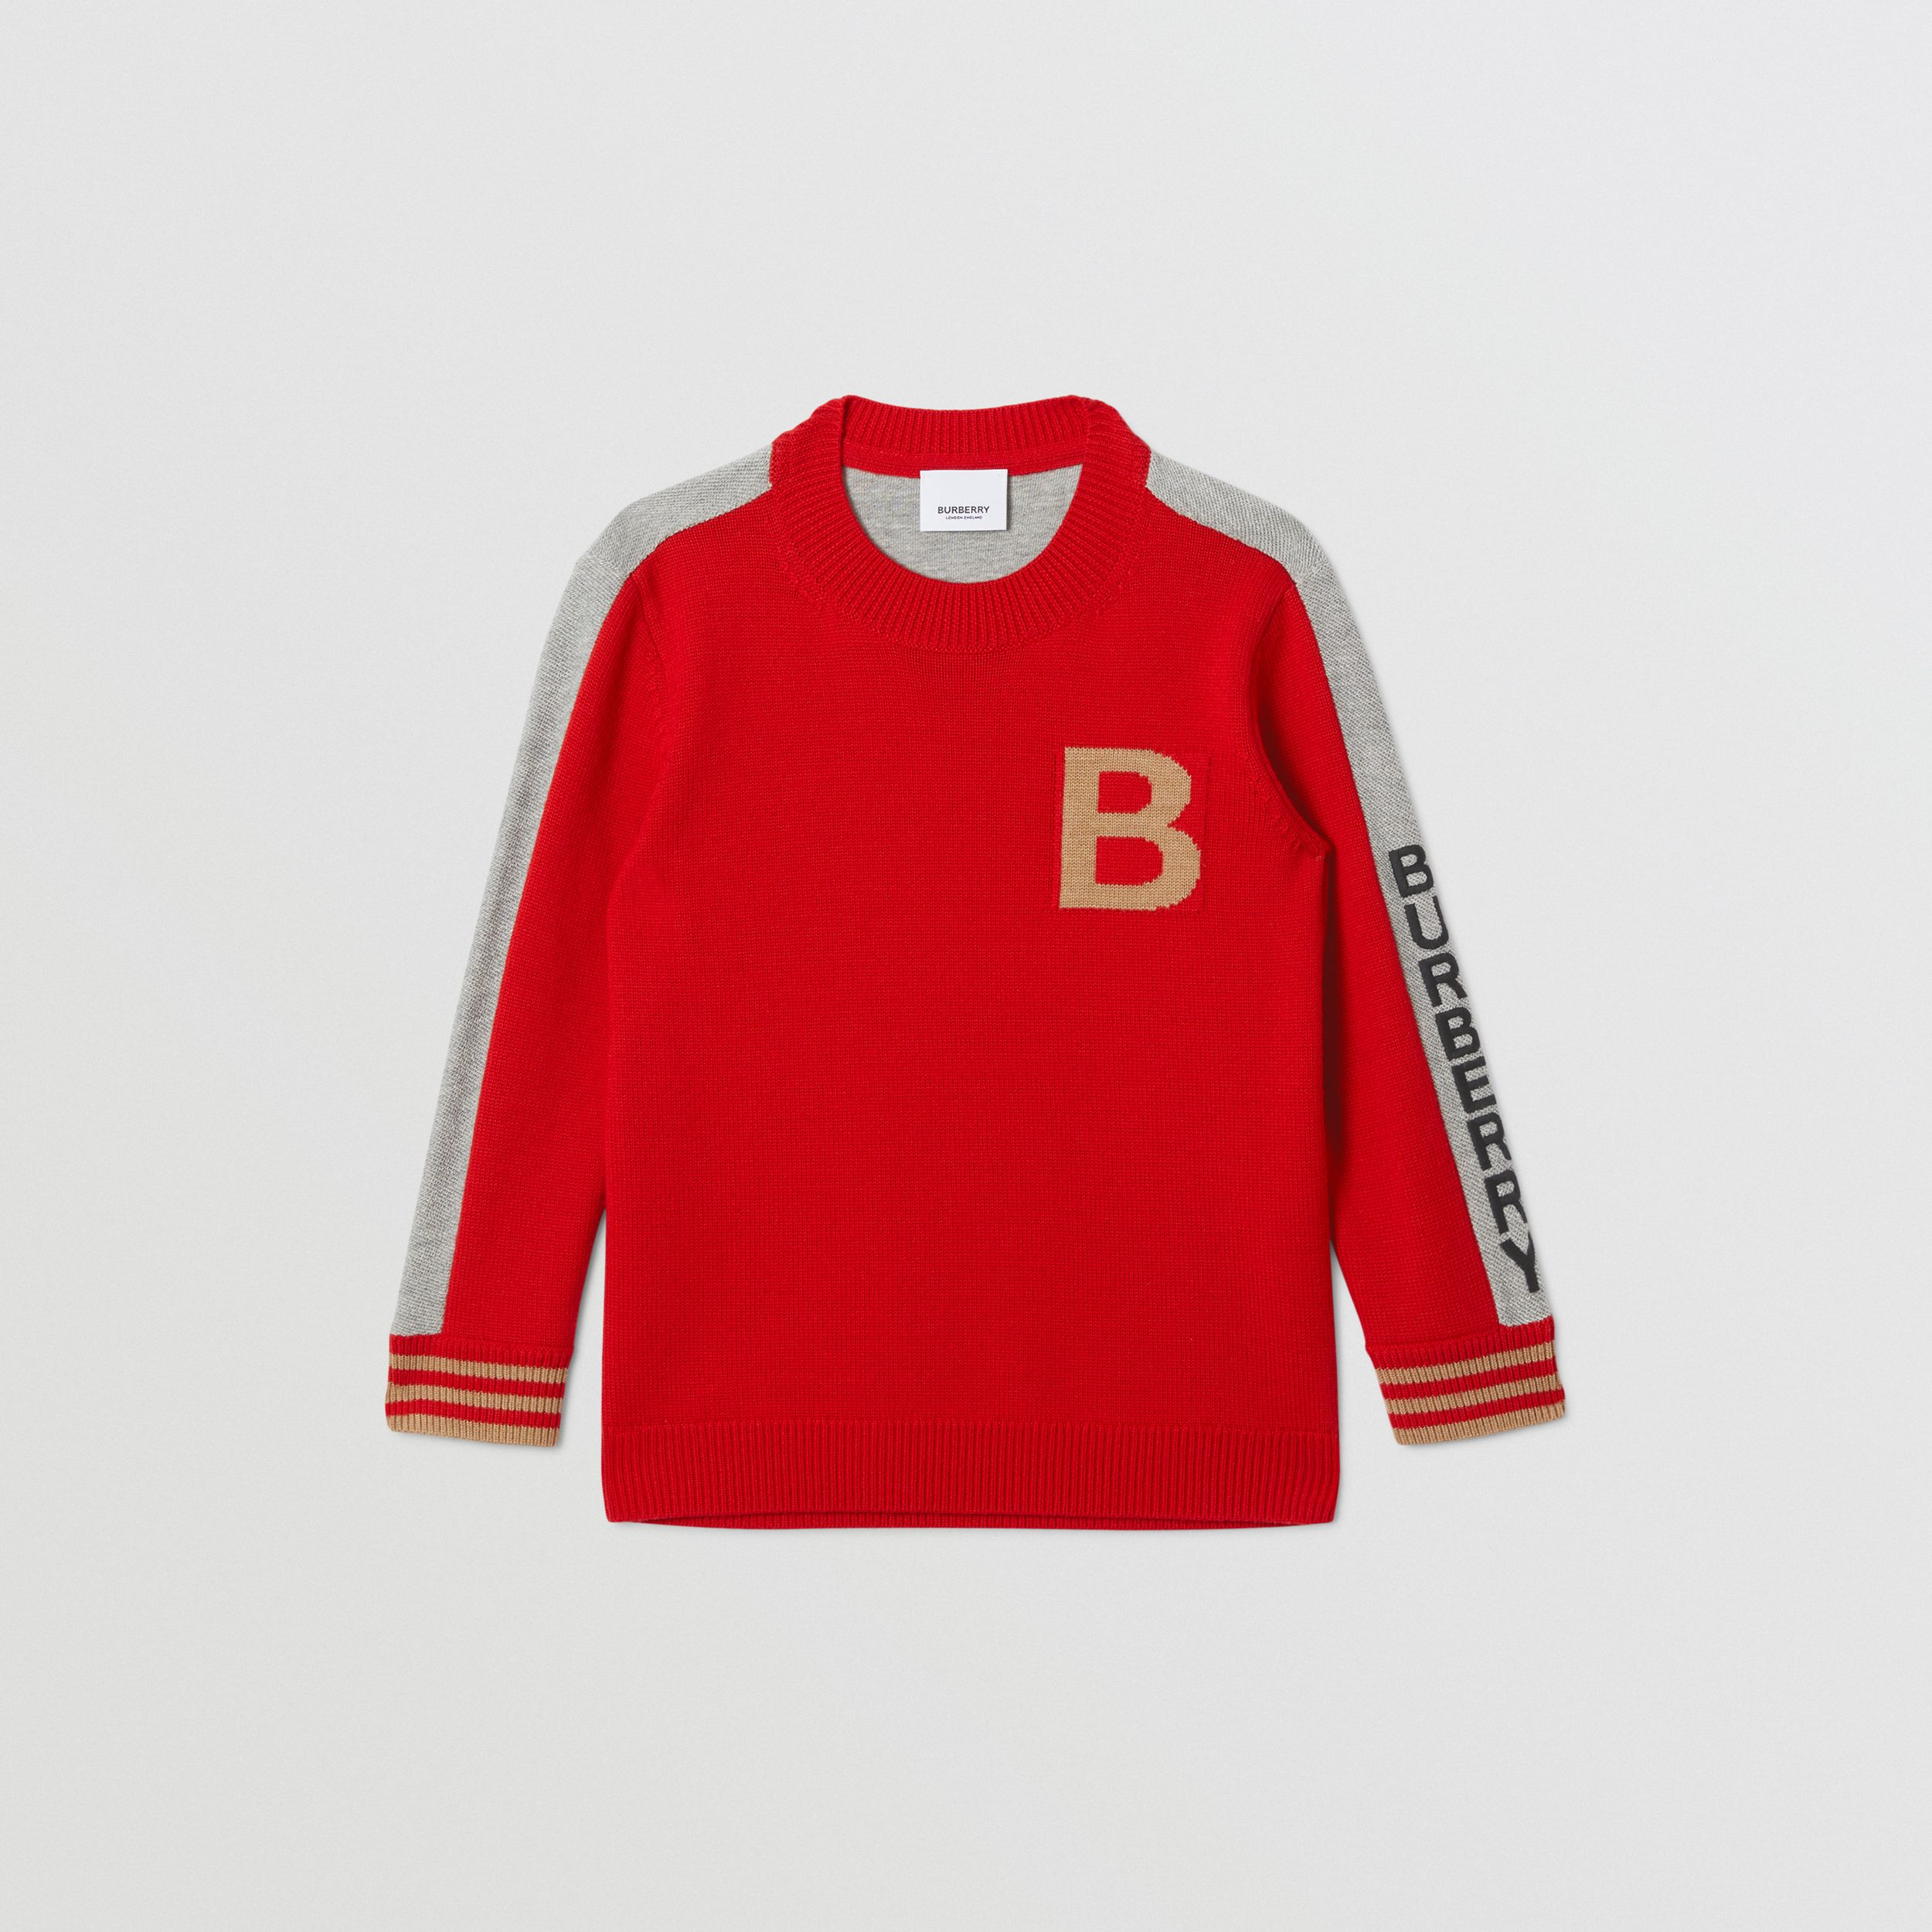 B Motif Merino Wool Jacquard Sweater in Bright Red | Burberry - 1